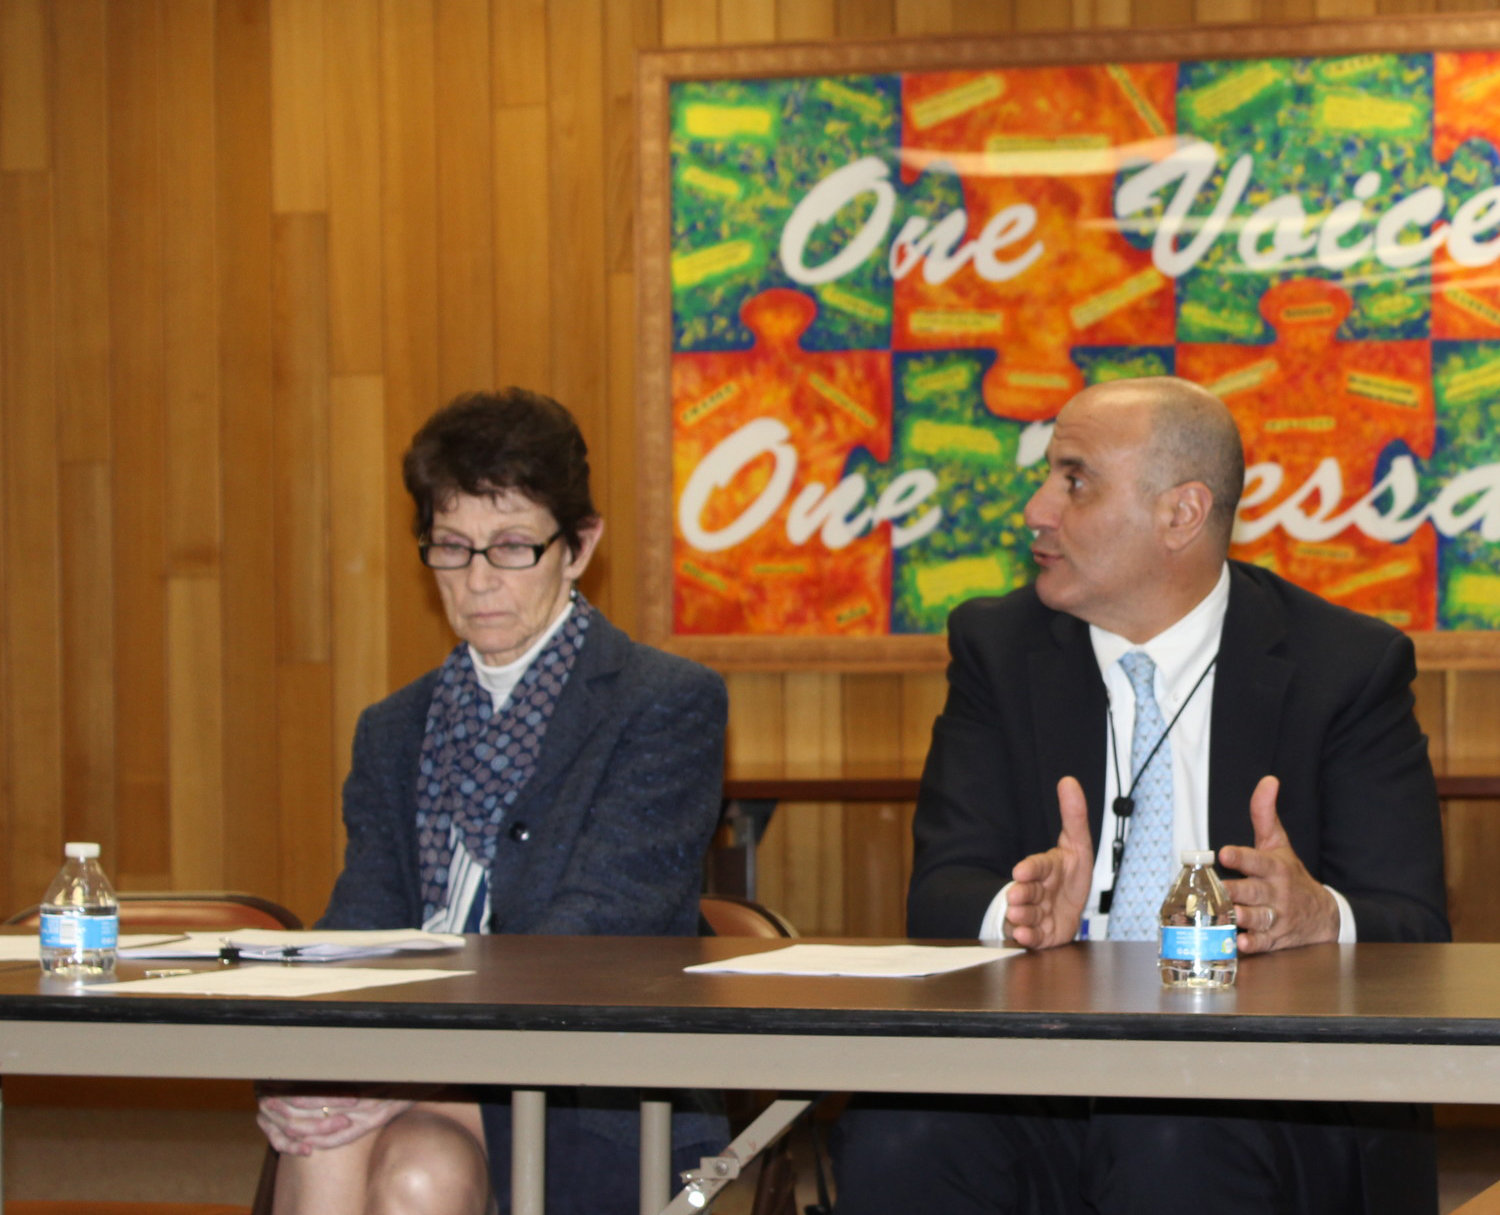 Kate Freeman, near right, pictured last year, led a breakdown of the proposed 2019-20 district budget at this month's board of education meeting. Superintendent John DeTommaso, far right, said he was excited about some of the district's new programs.